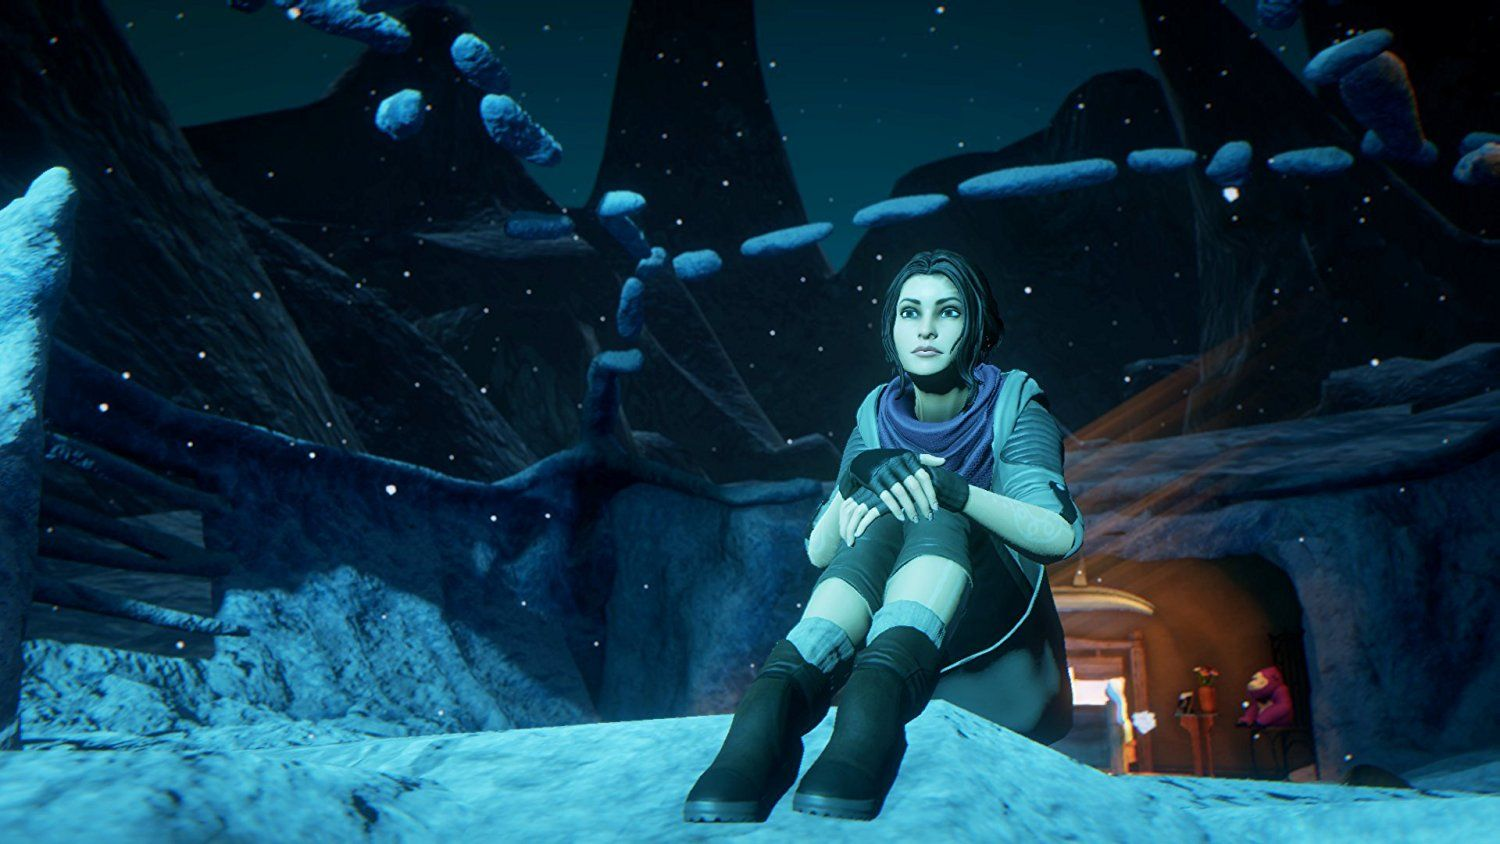 Dreamfall Chapters (PS4) - 5